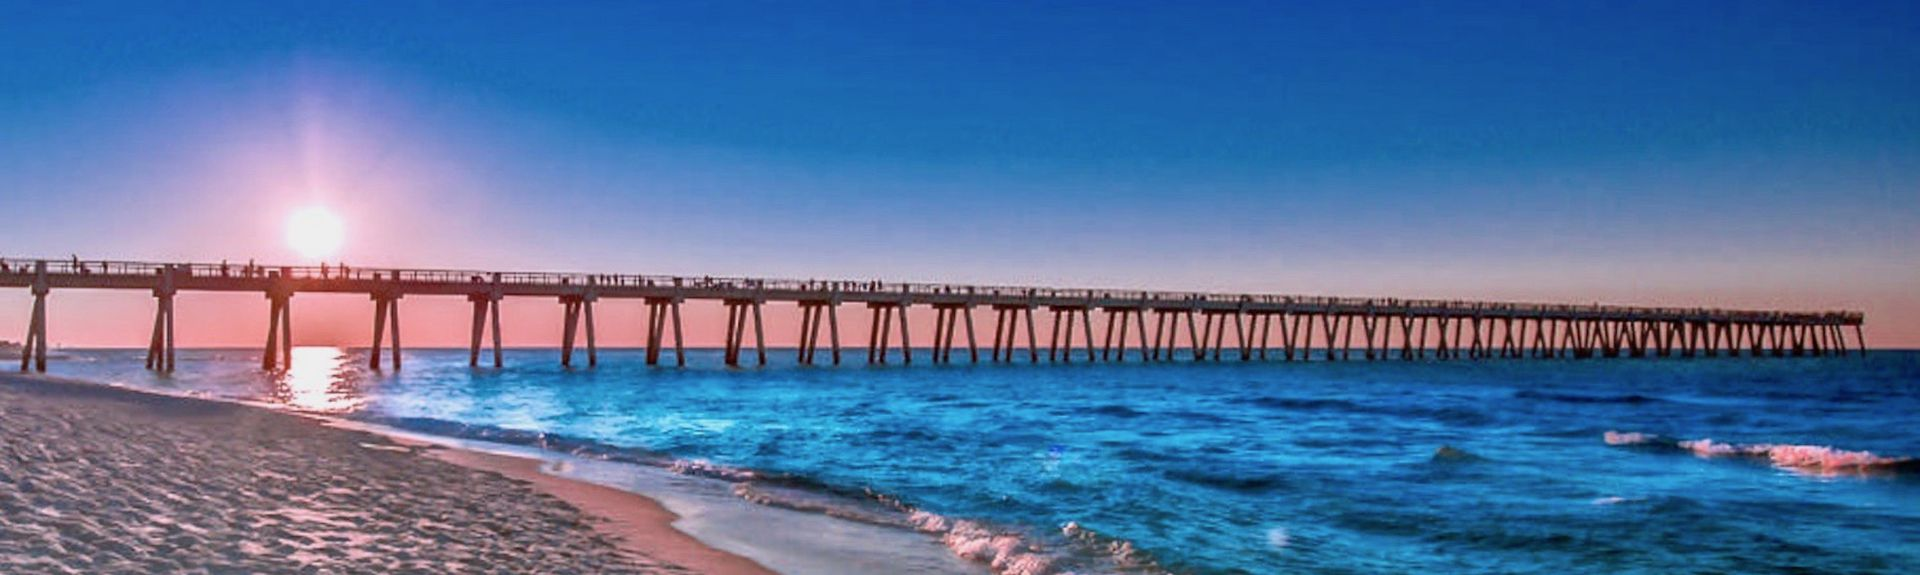 Navarre Beach, FL, USA